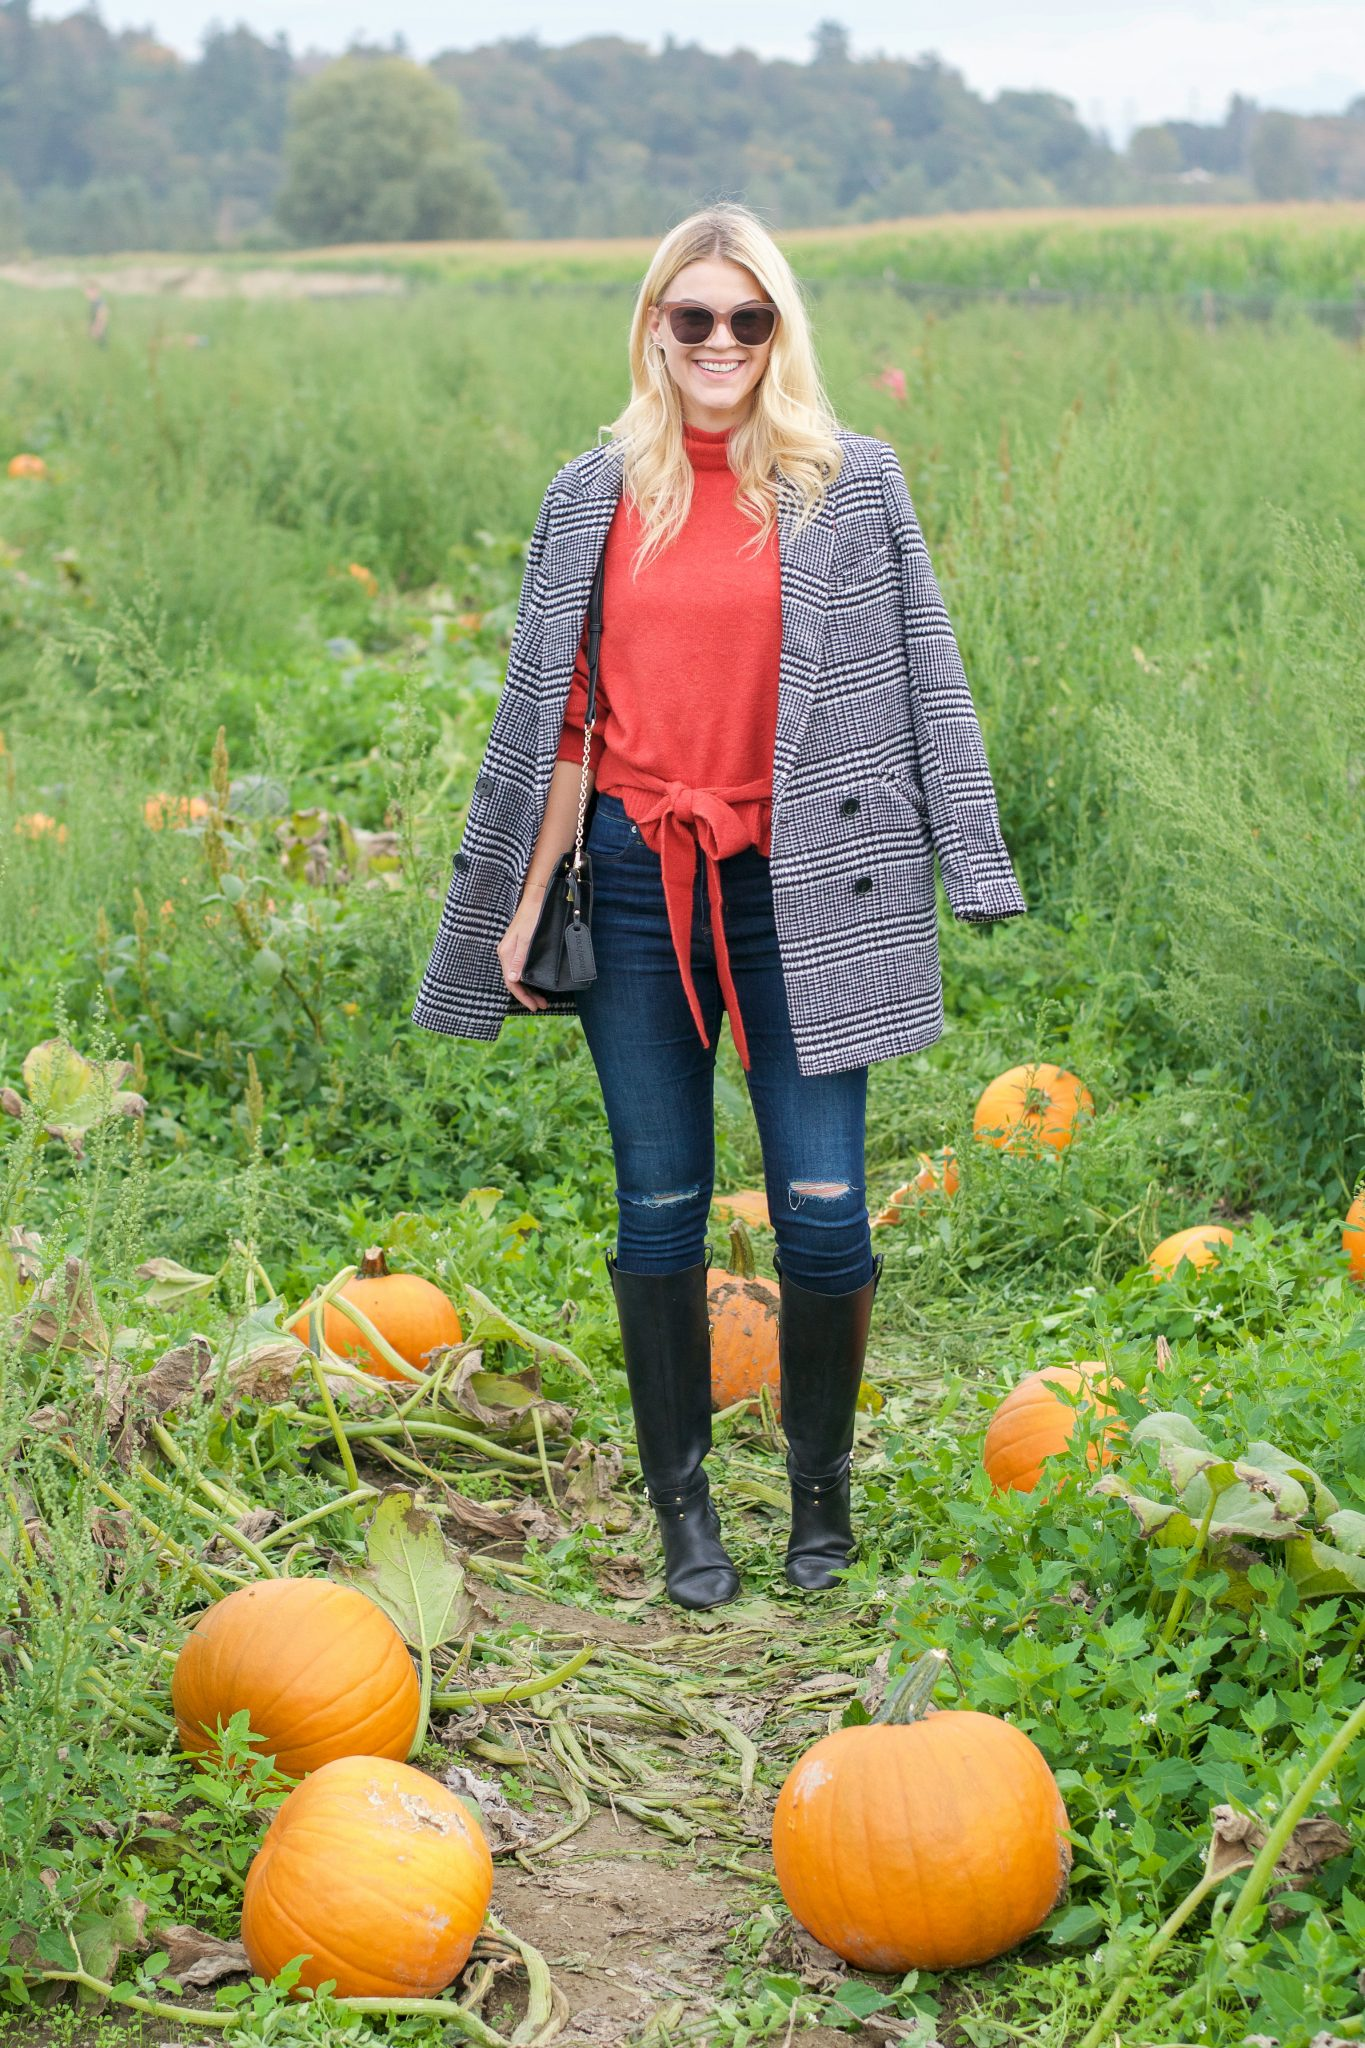 What I Wore To The Pumpkin Patch